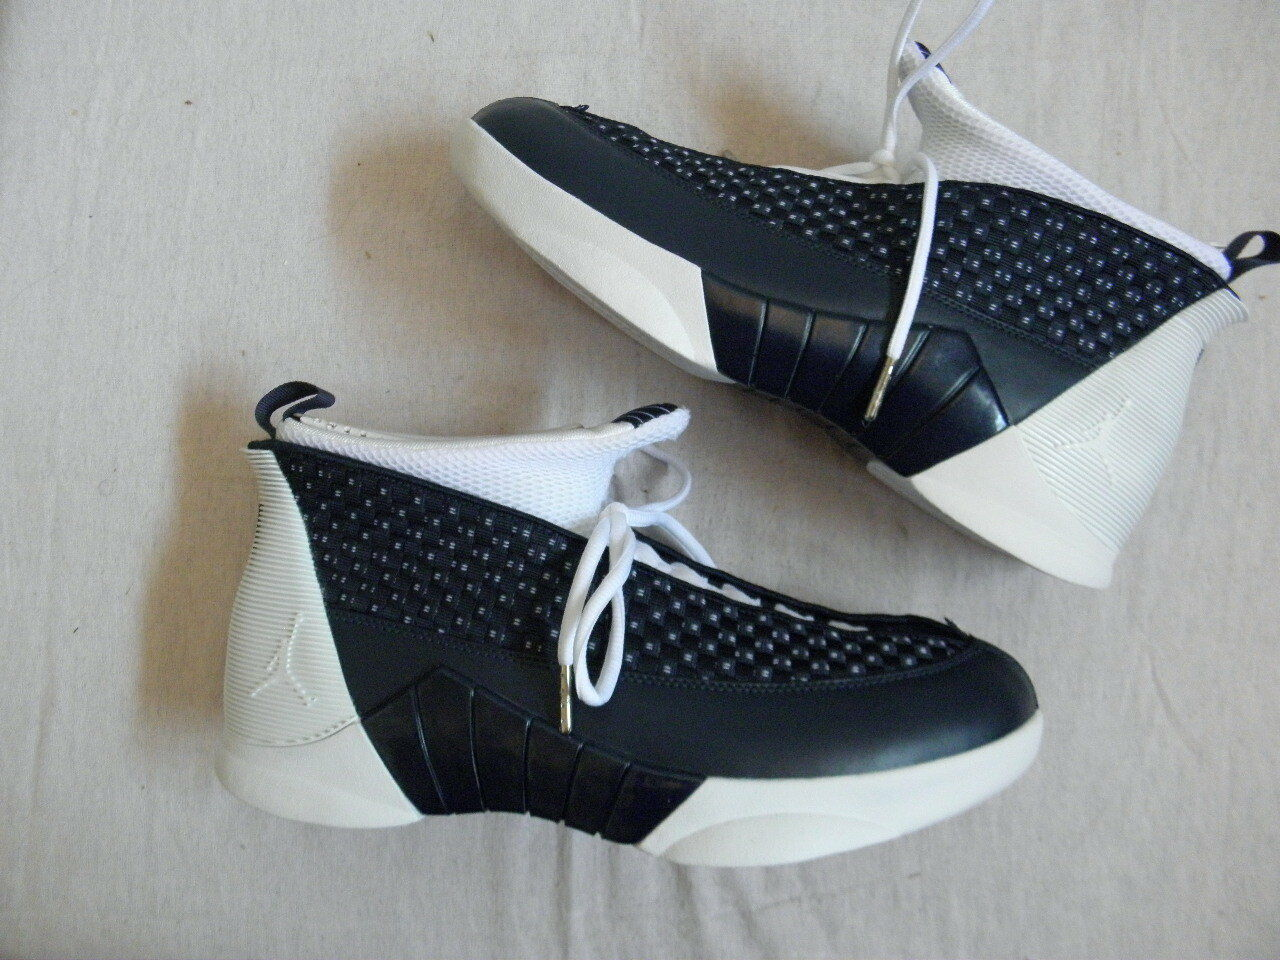 Nike Air Jordan XV 15 obsidian Blanc OG original colorway Taille 11 DS NEW braided